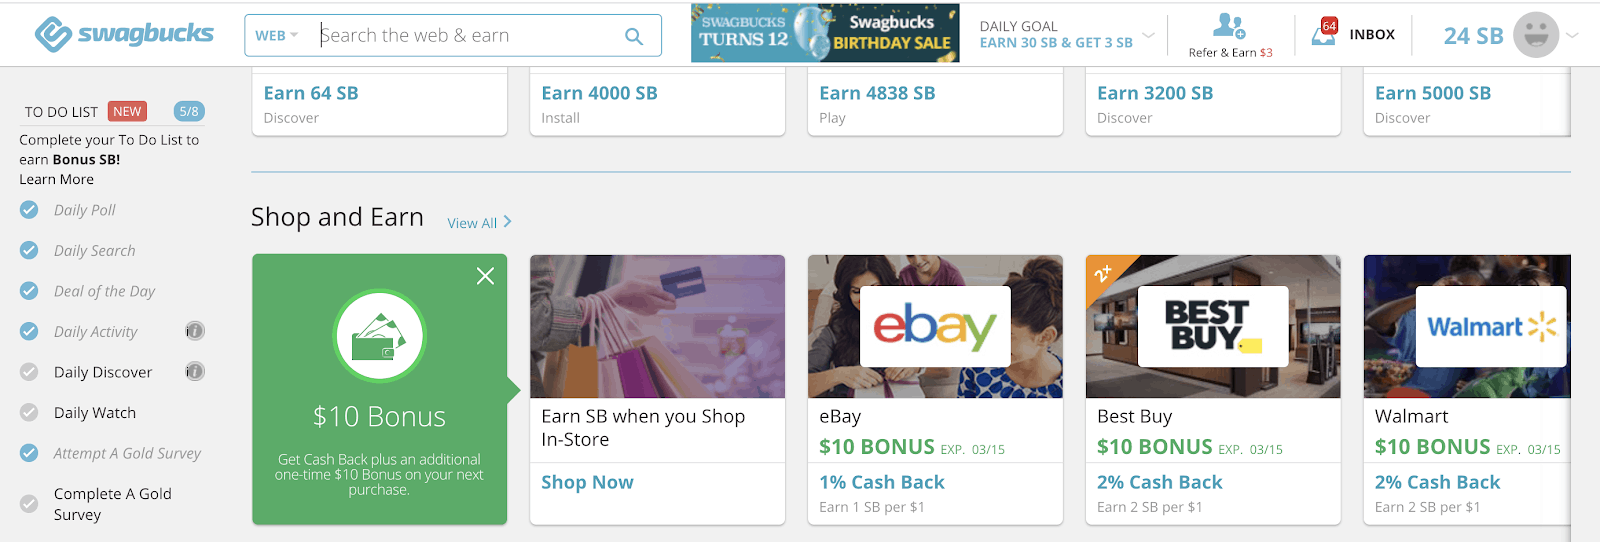 Swagbucks To Do